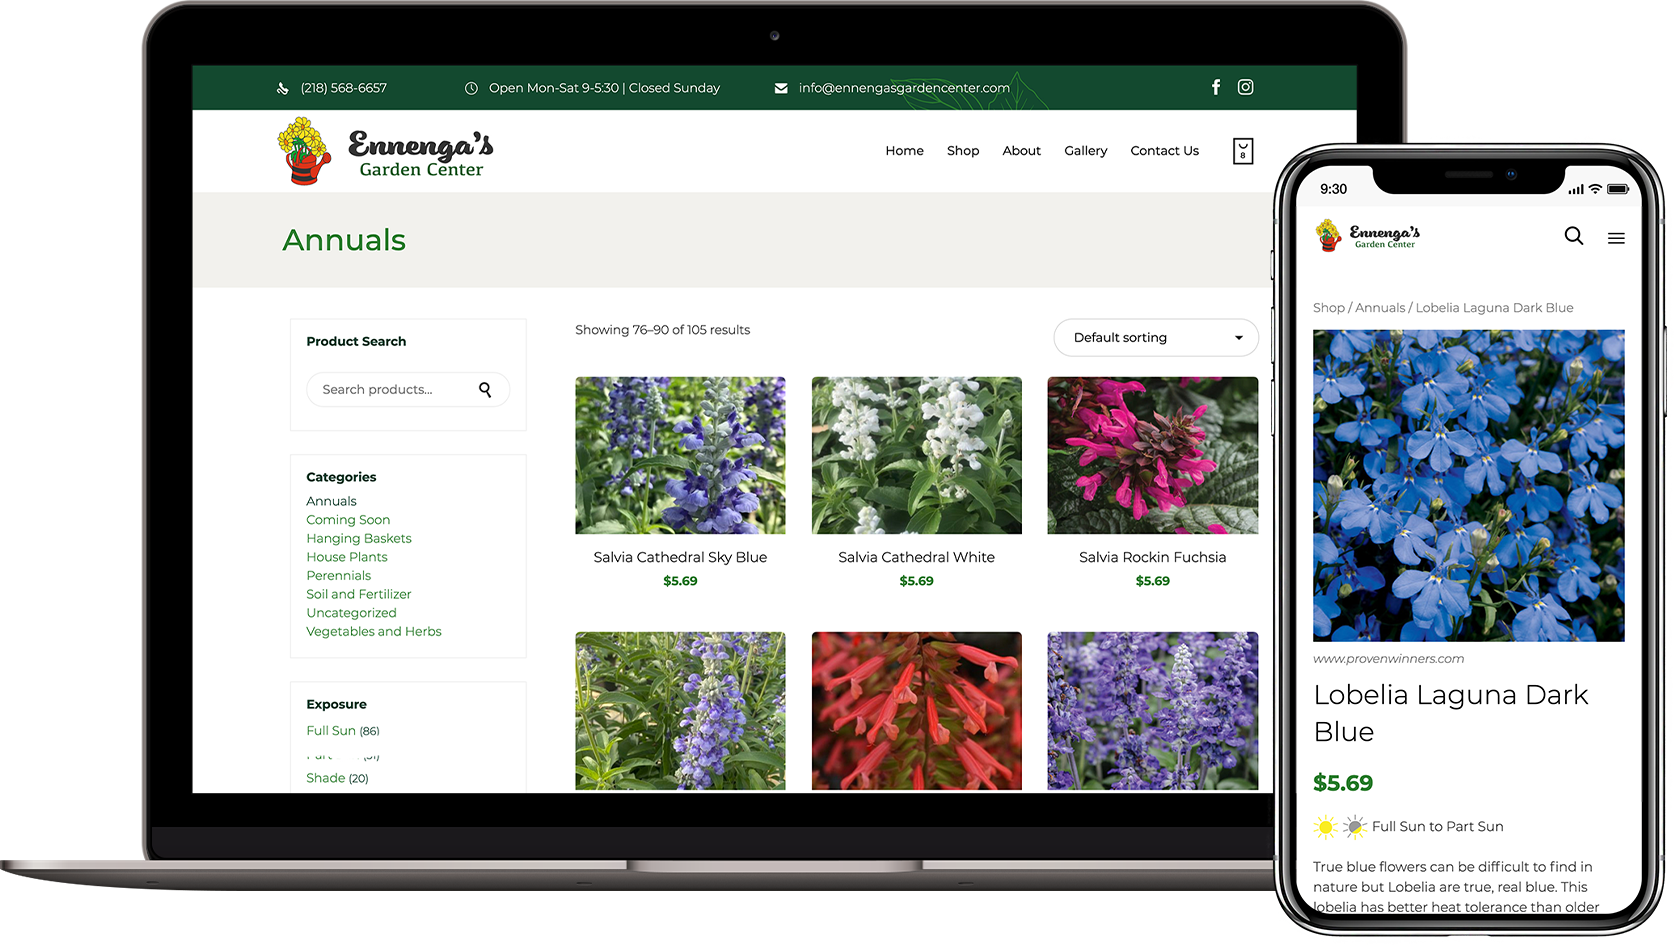 Ennenga'a Garden Center Website Mockup of Product and Shop Pages on Laptop and Phone